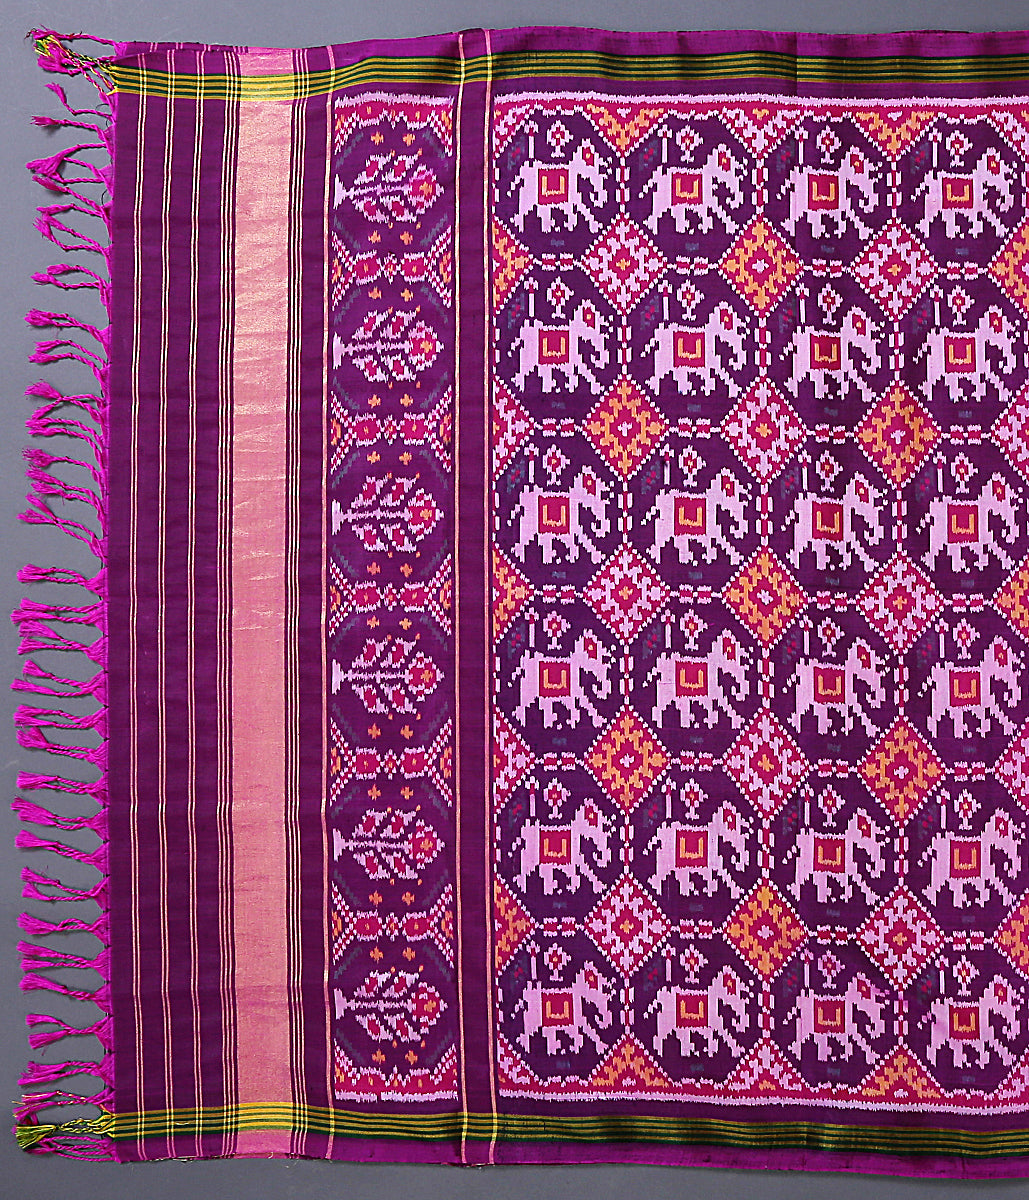 Handwoven ikat dupatta in a rich purple color